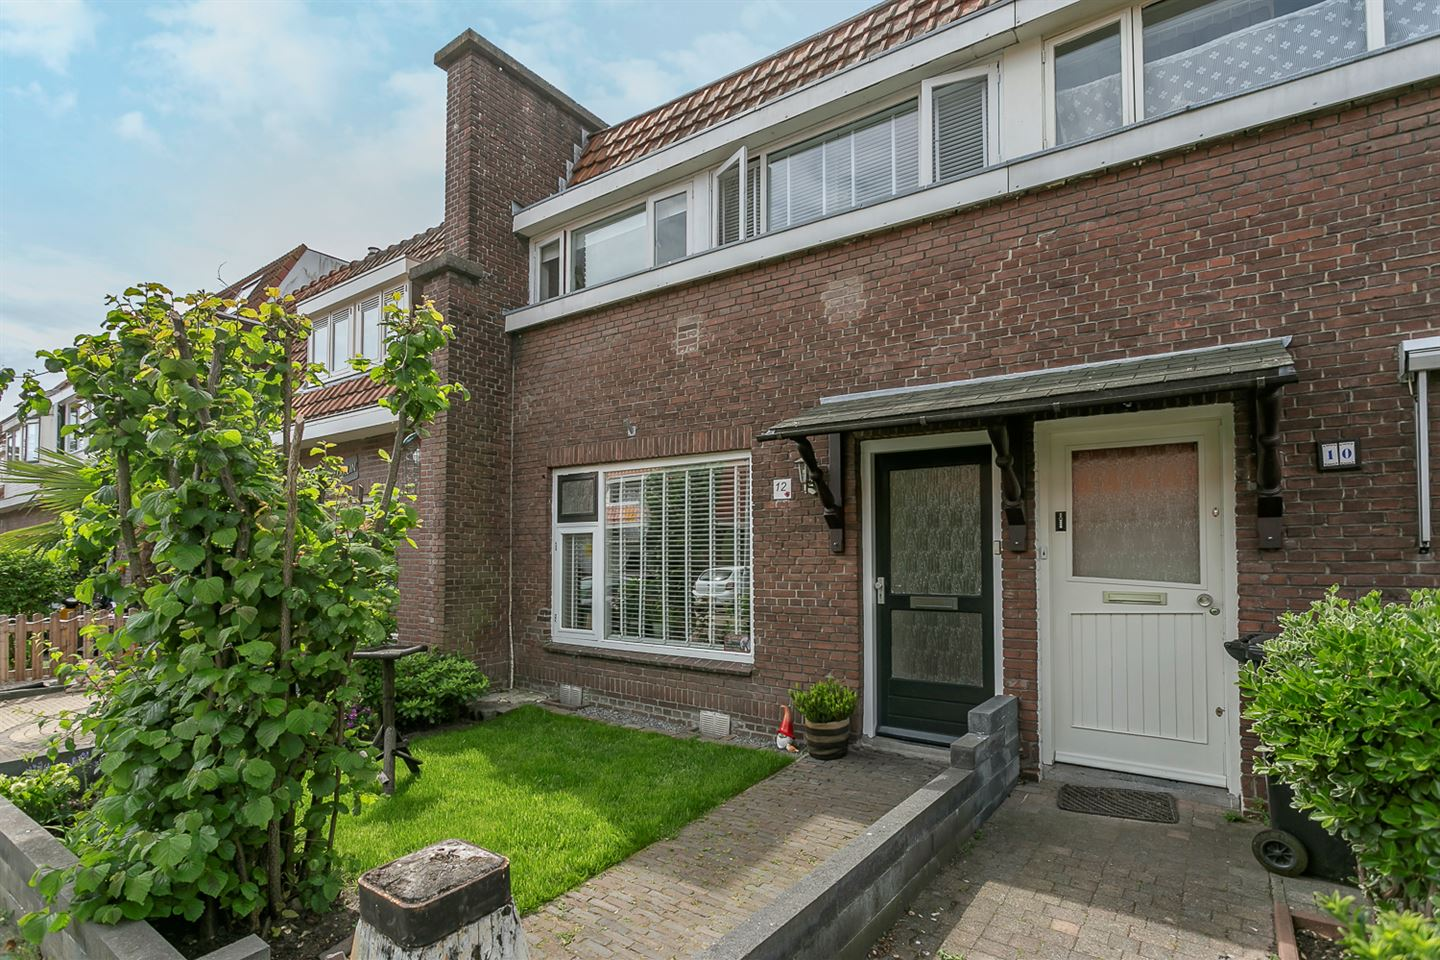 View photo 1 of Tedingerstraat 12